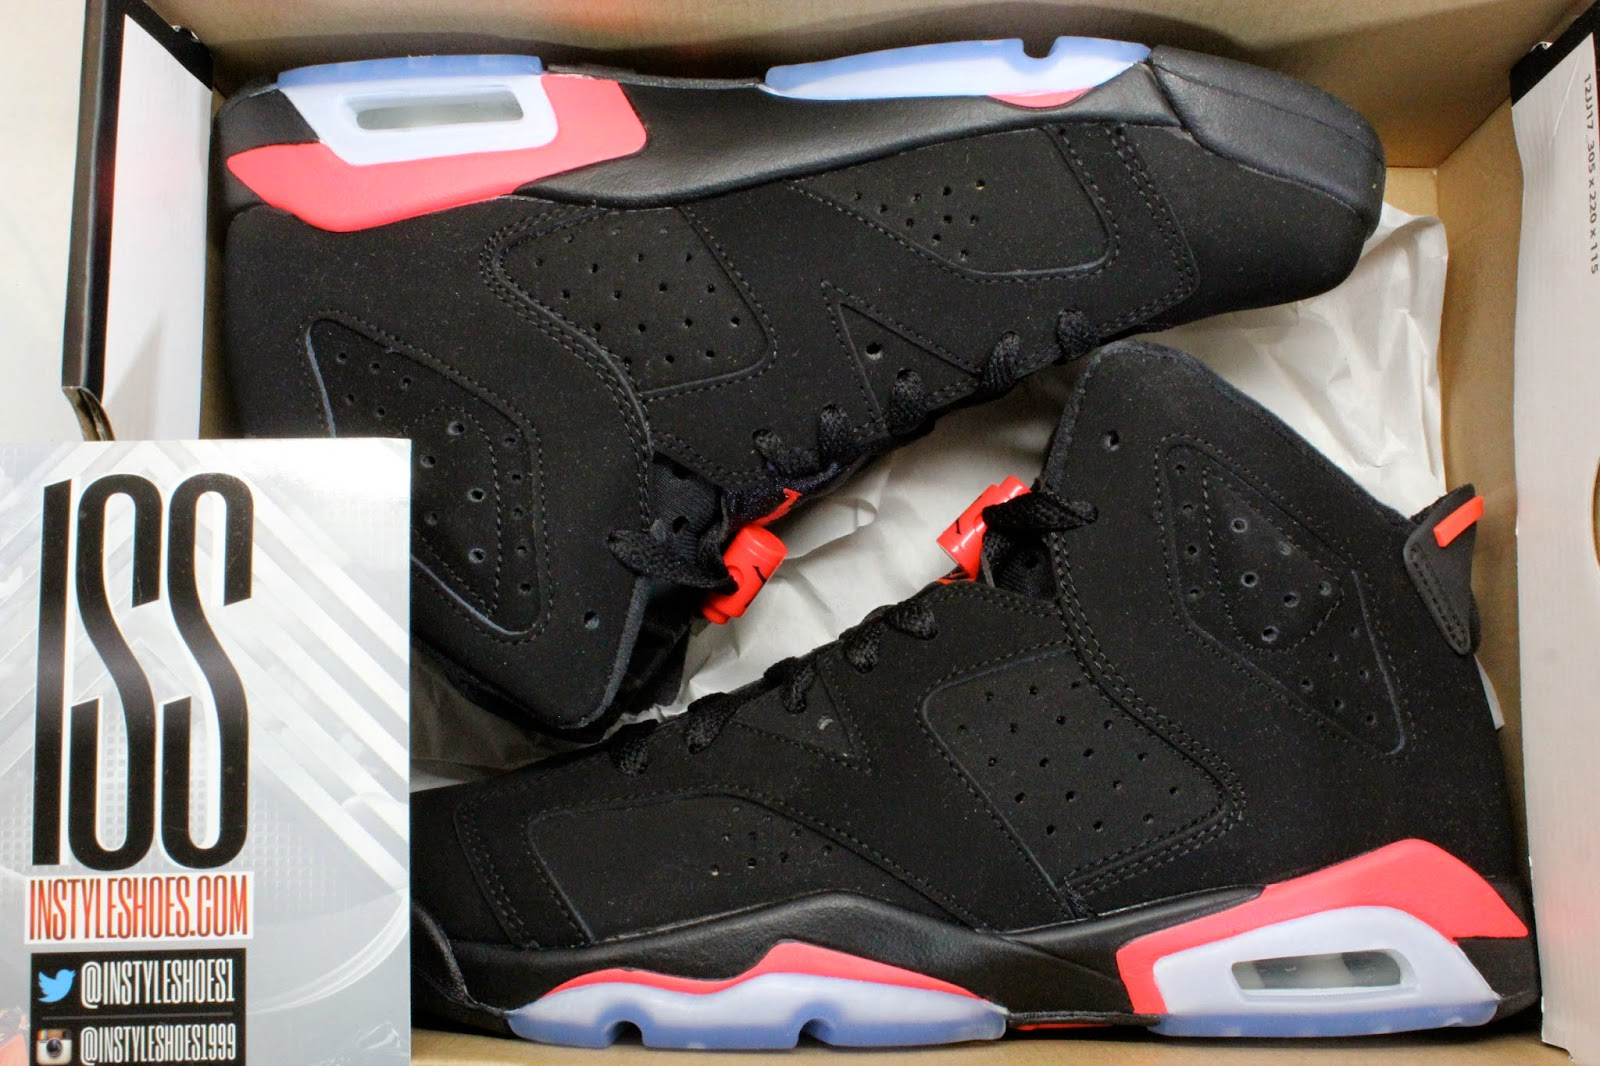 instyleshoes   new arrivals  u0026 discussions about past releases  air jordan 6 retro gs black